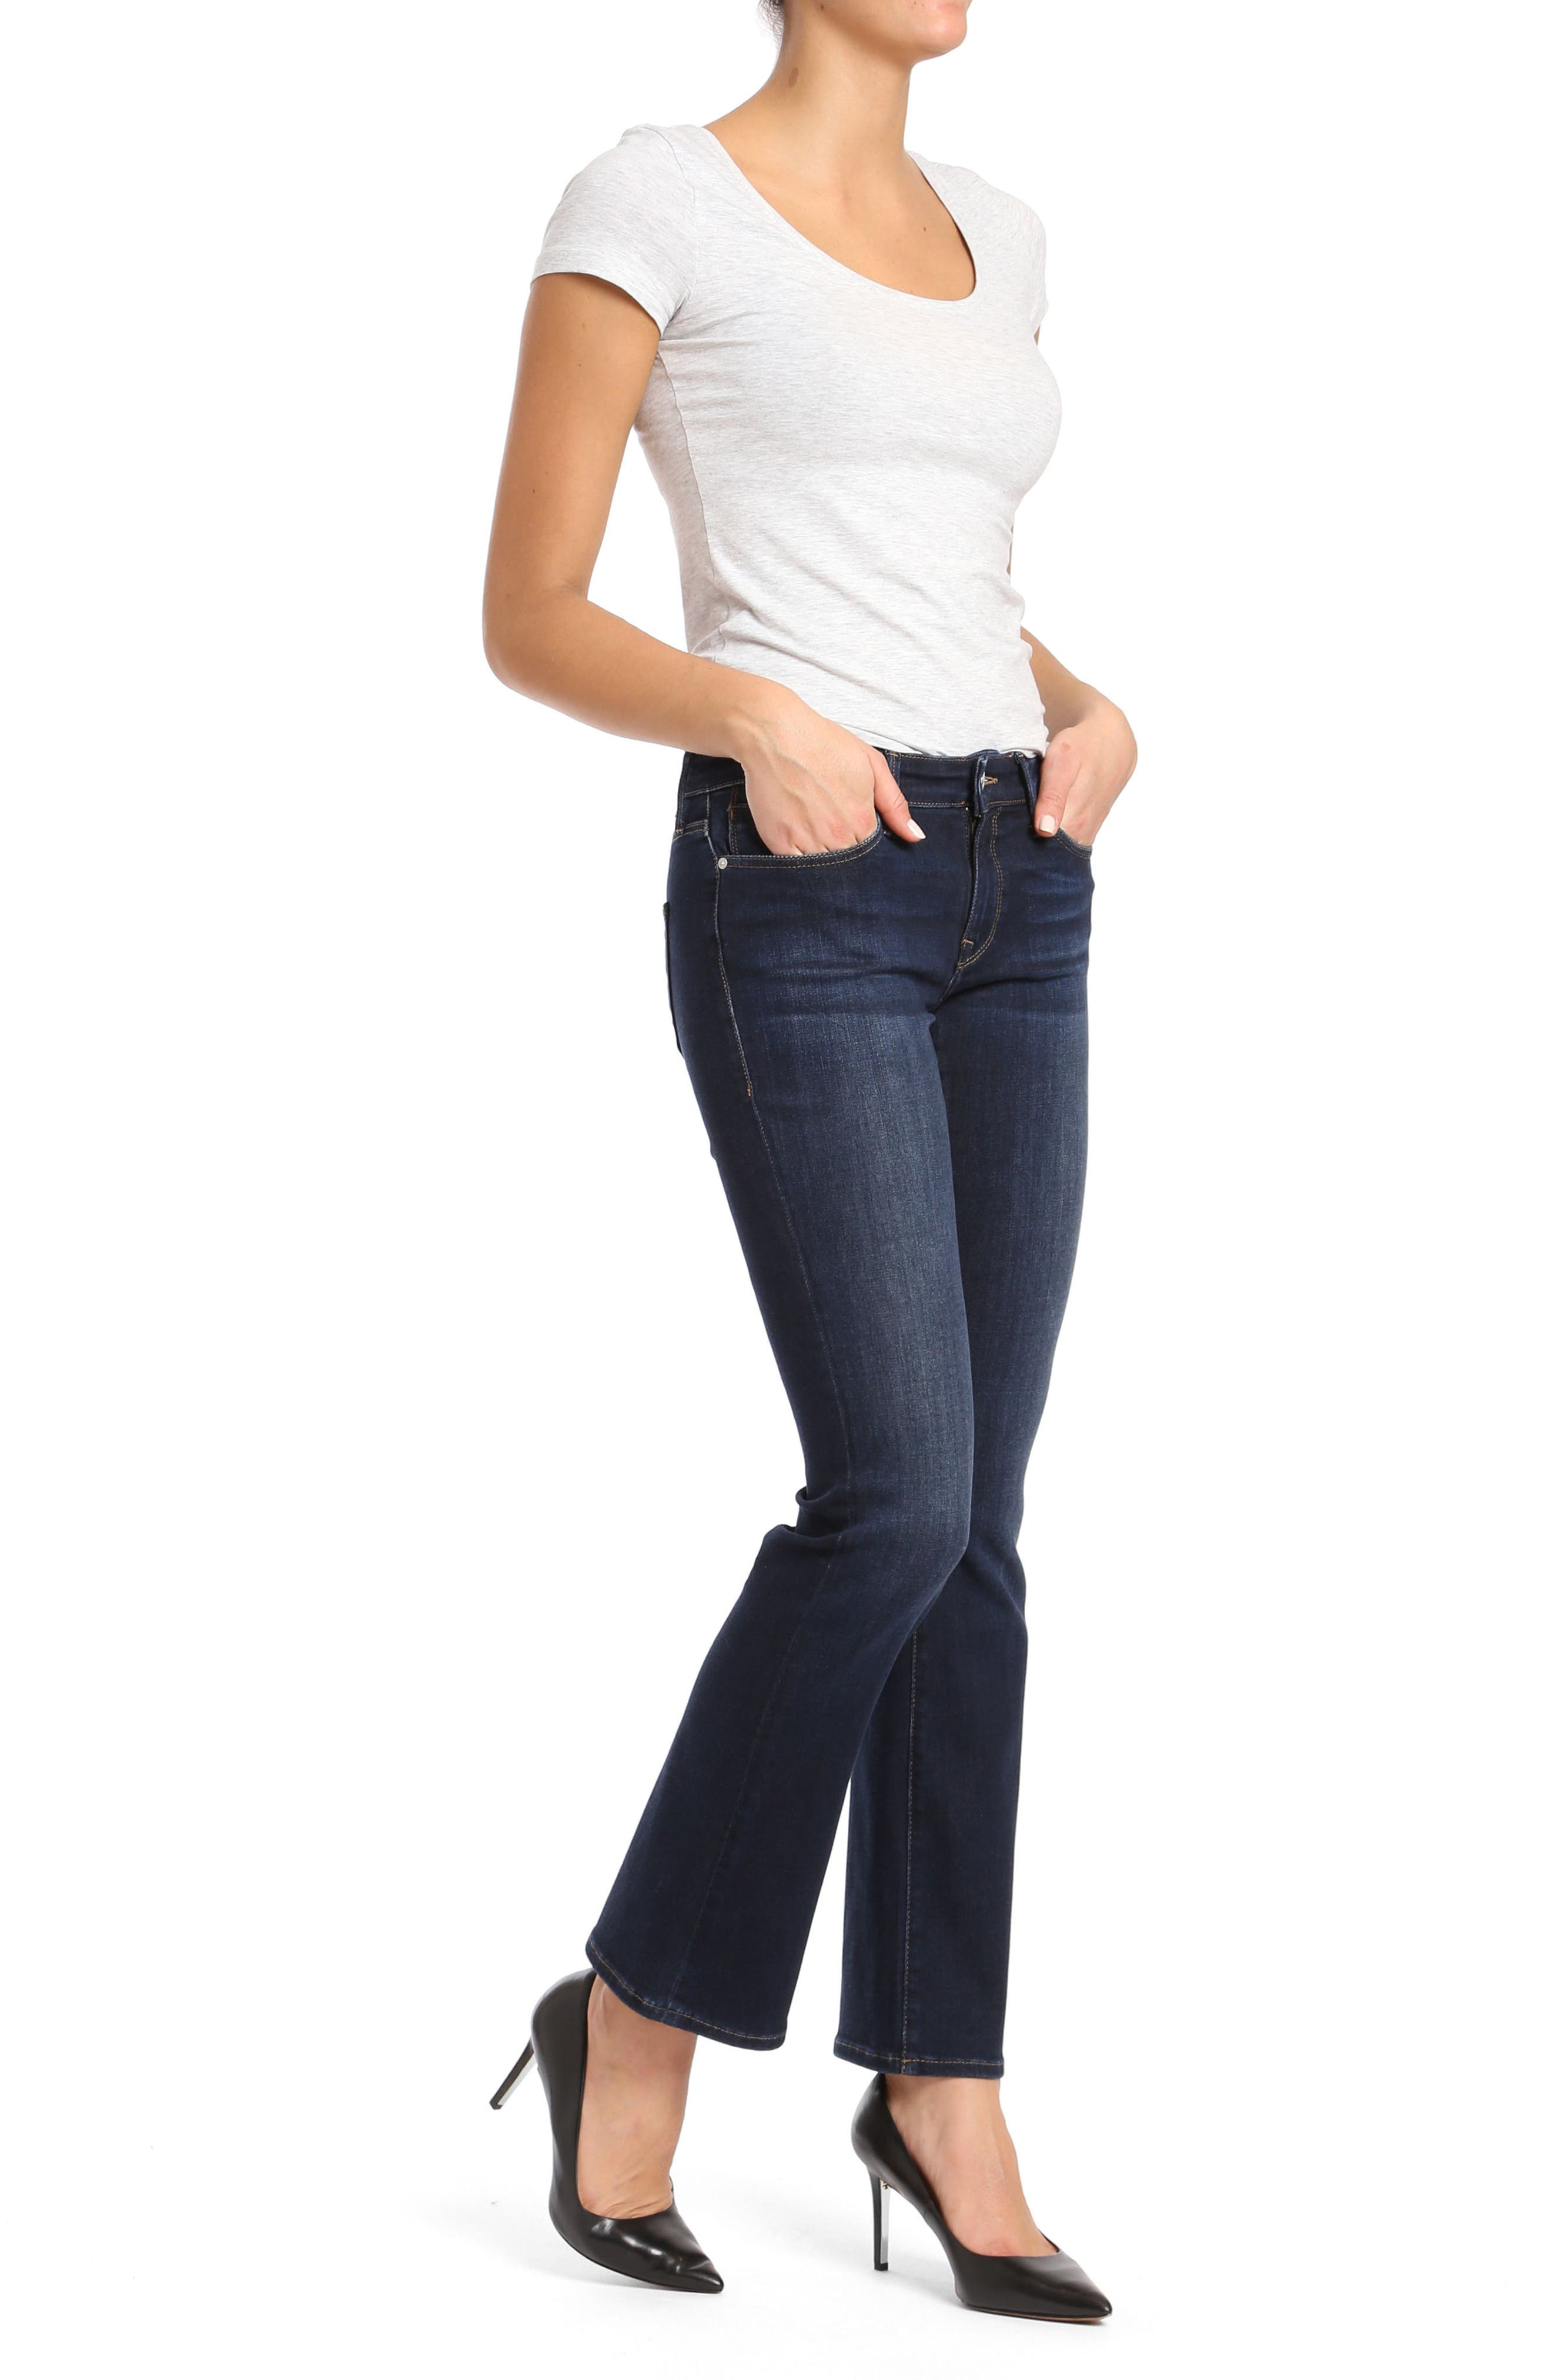 Molly Classic Bootcuts Jeans,                             Alternate thumbnail 4, color,                             Deep Super Soft